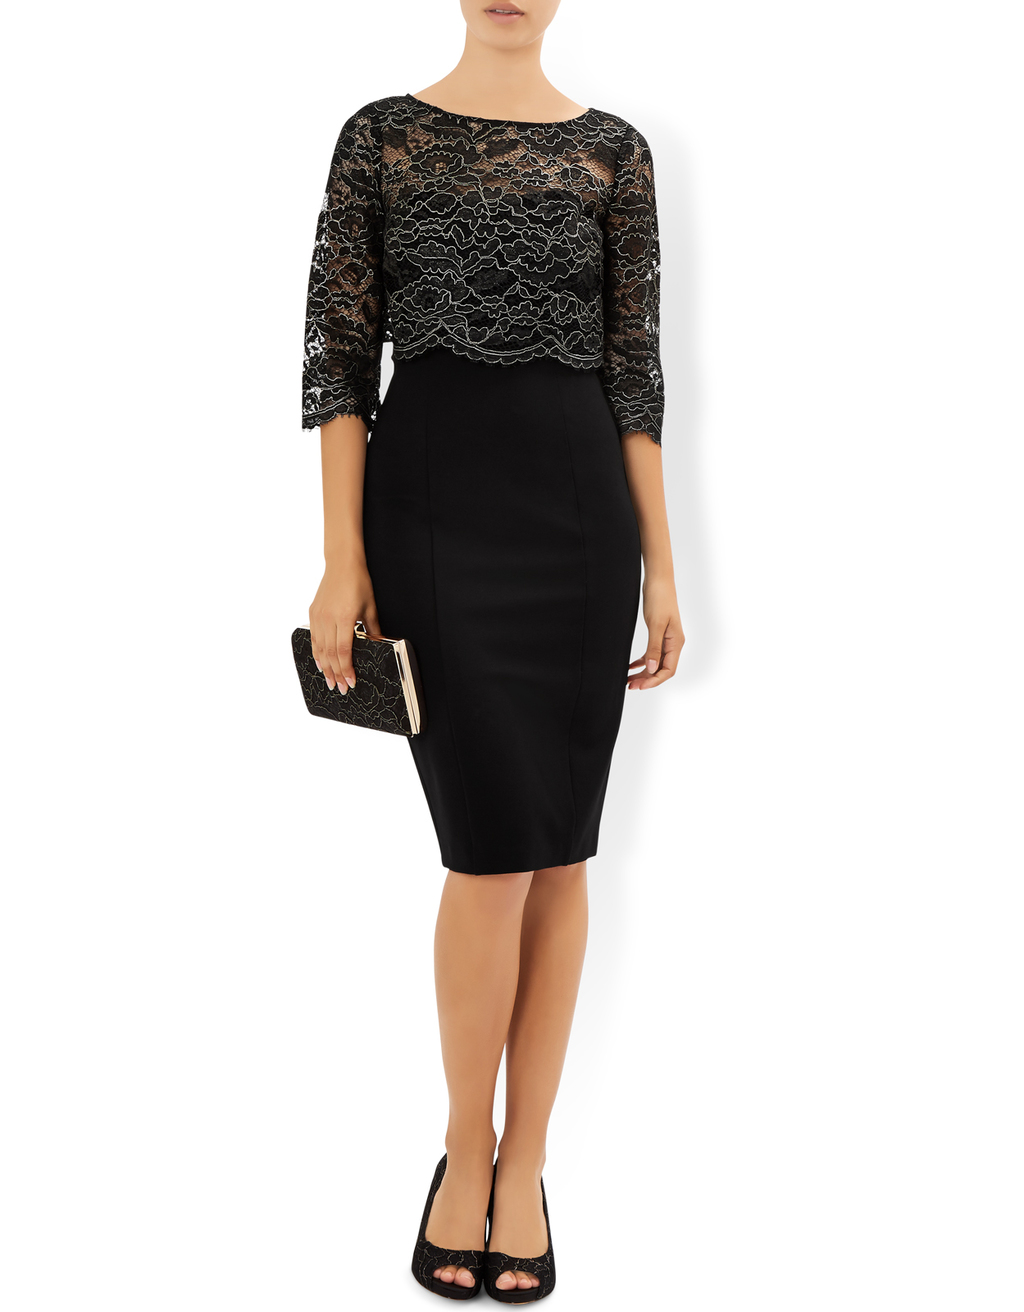 Madineh Dress - fit: tight; pattern: plain; style: bodycon; secondary colour: charcoal; predominant colour: black; occasions: evening; length: on the knee; neckline: crew; sleeve length: 3/4 length; sleeve style: standard; texture group: jersey - clingy; pattern type: fabric; fibres: nylon - stretch; embellishment: lace; multicoloured: multicoloured; season: a/w 2016; wardrobe: event